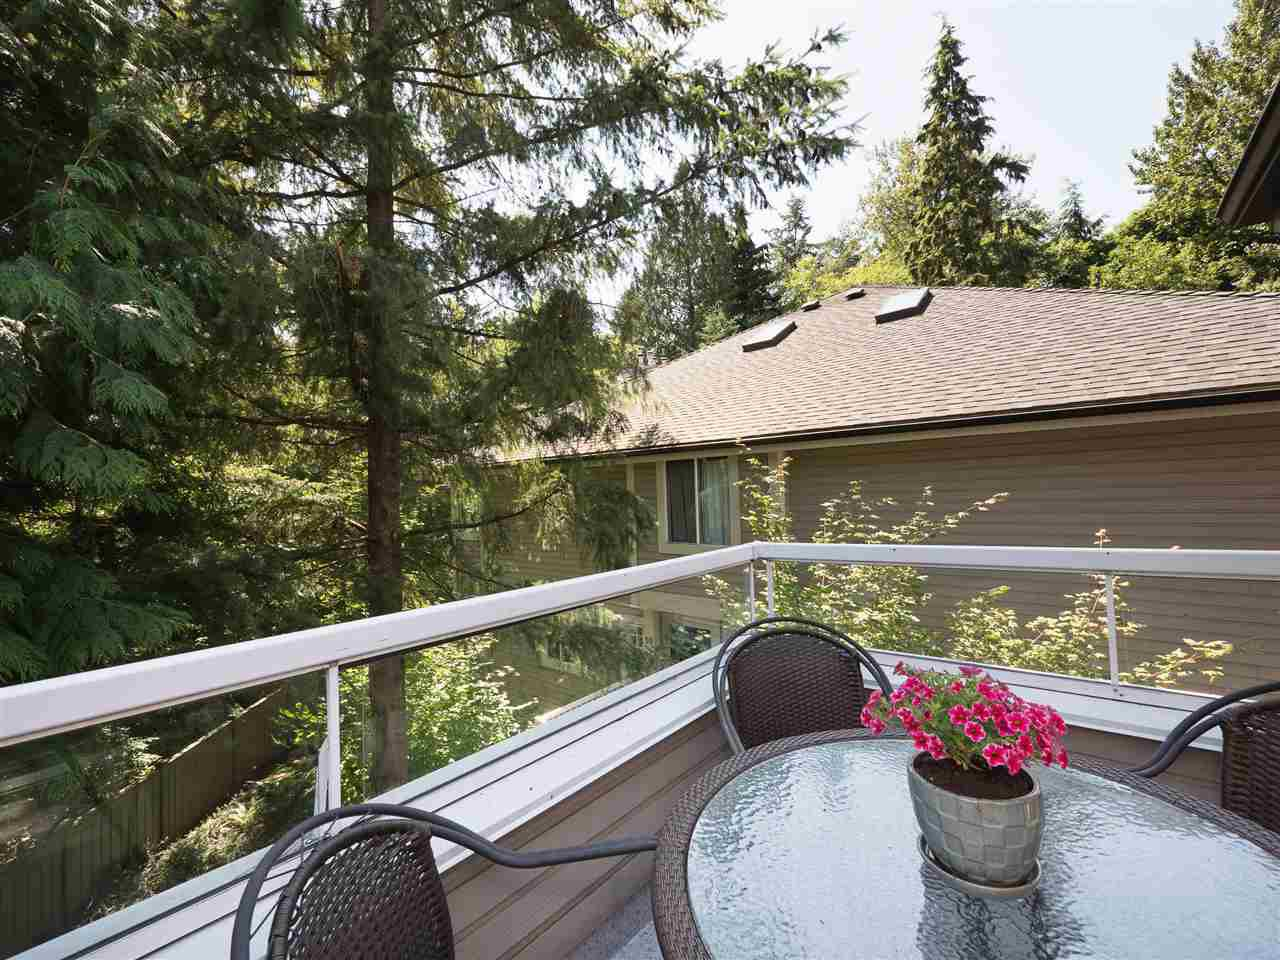 """Main Photo: 61 181 RAVINE Drive in Port Moody: Heritage Mountain Townhouse for sale in """"VIEWPOINT"""" : MLS®# R2188868"""